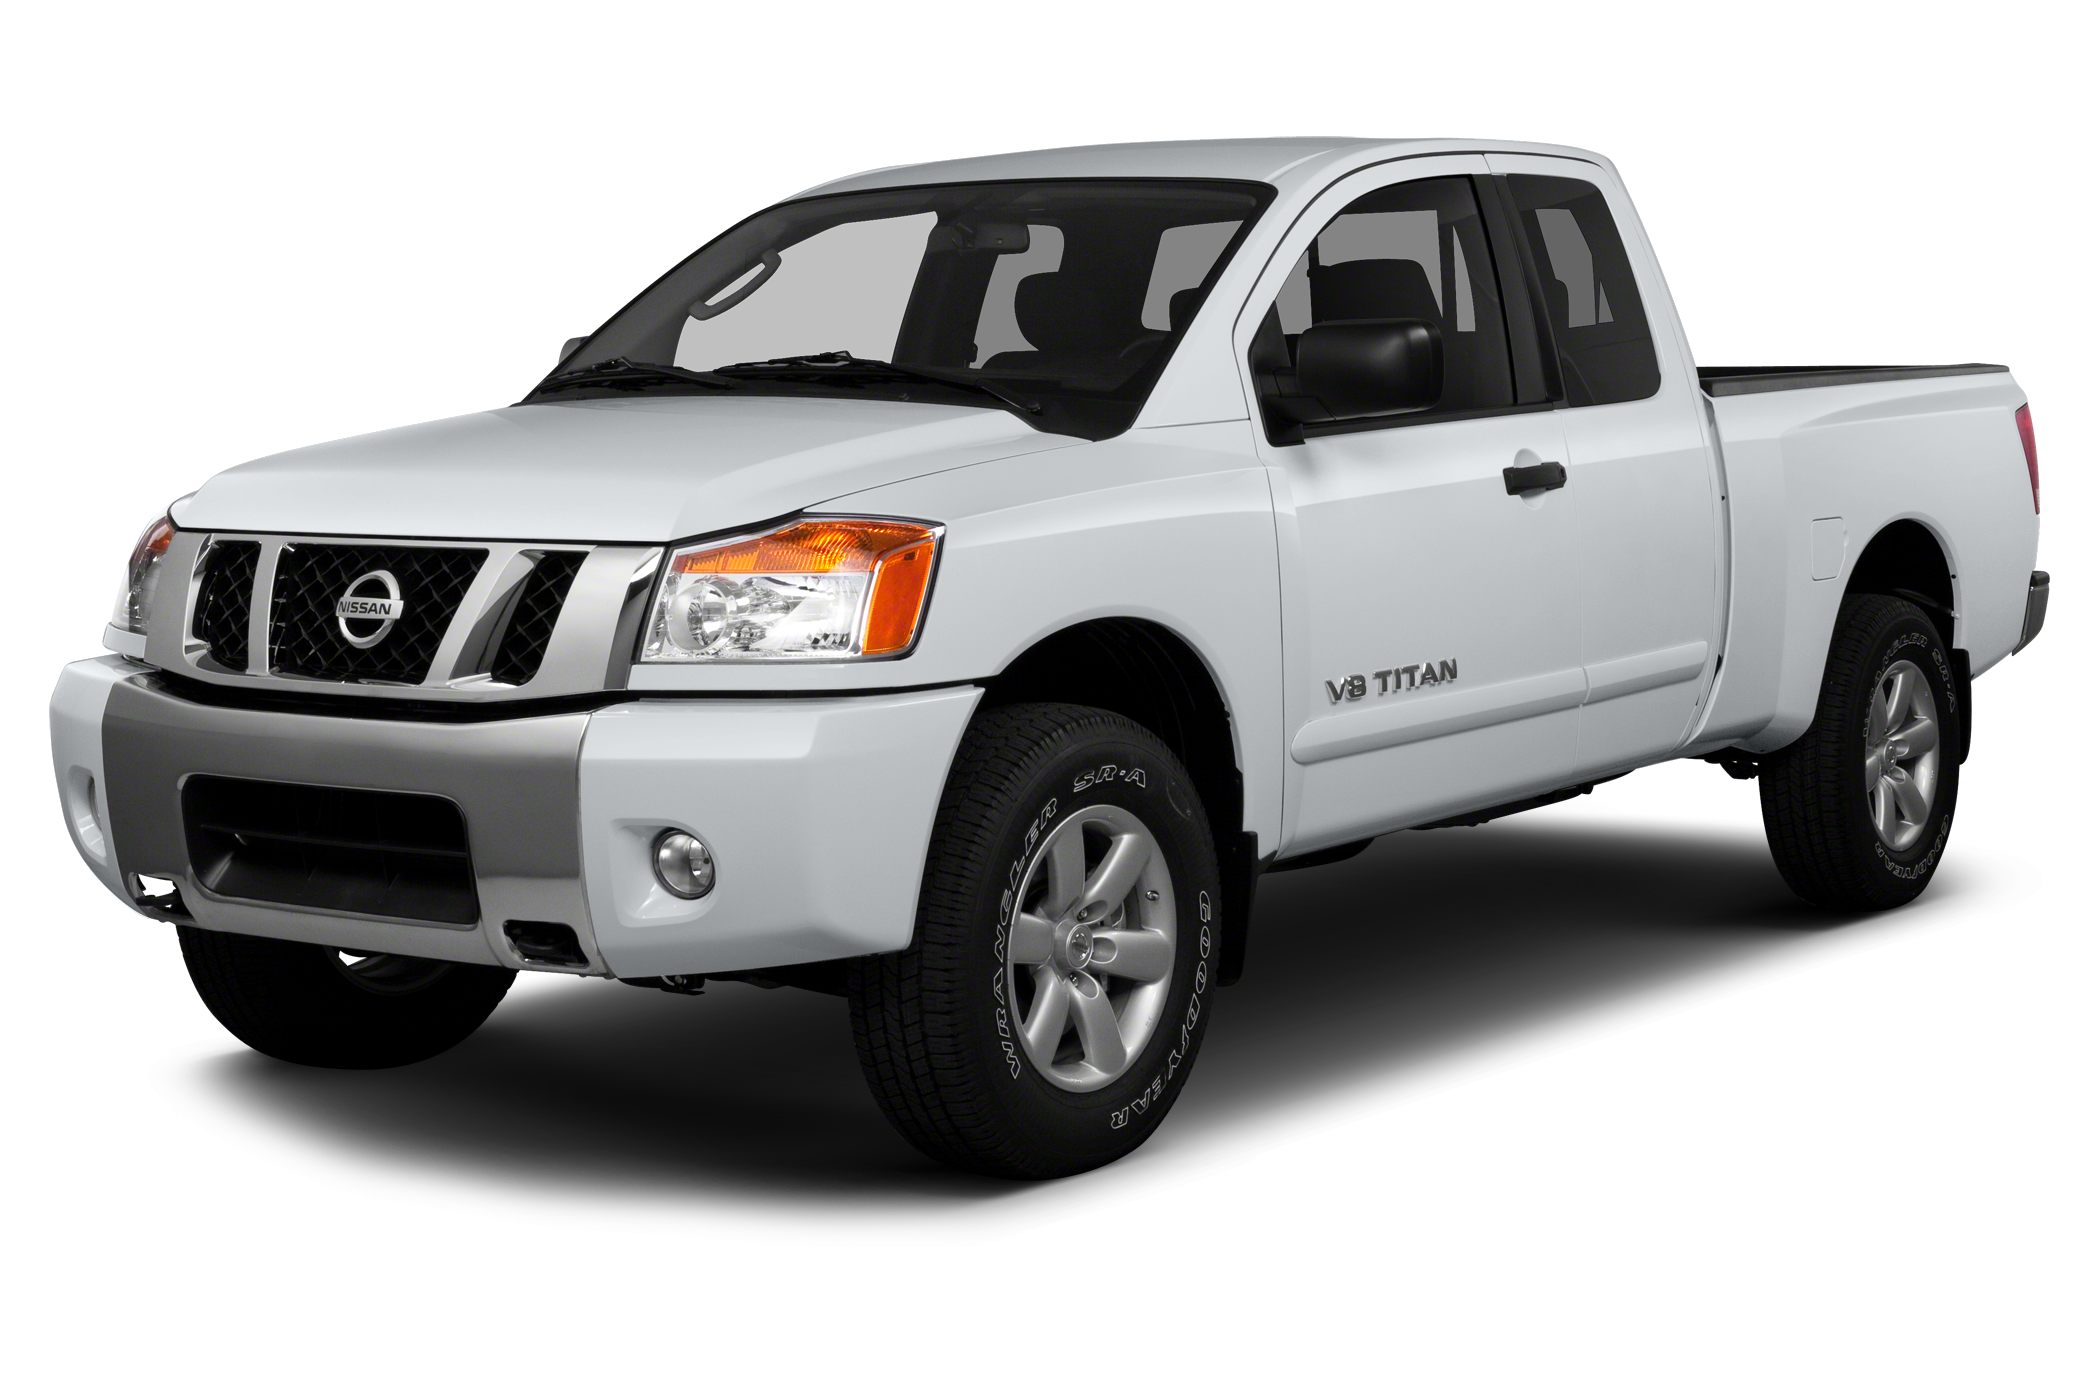 2015 Nissan Titan SV This White 2015 Nissan Titan SV might be just the king cab for you Intereste